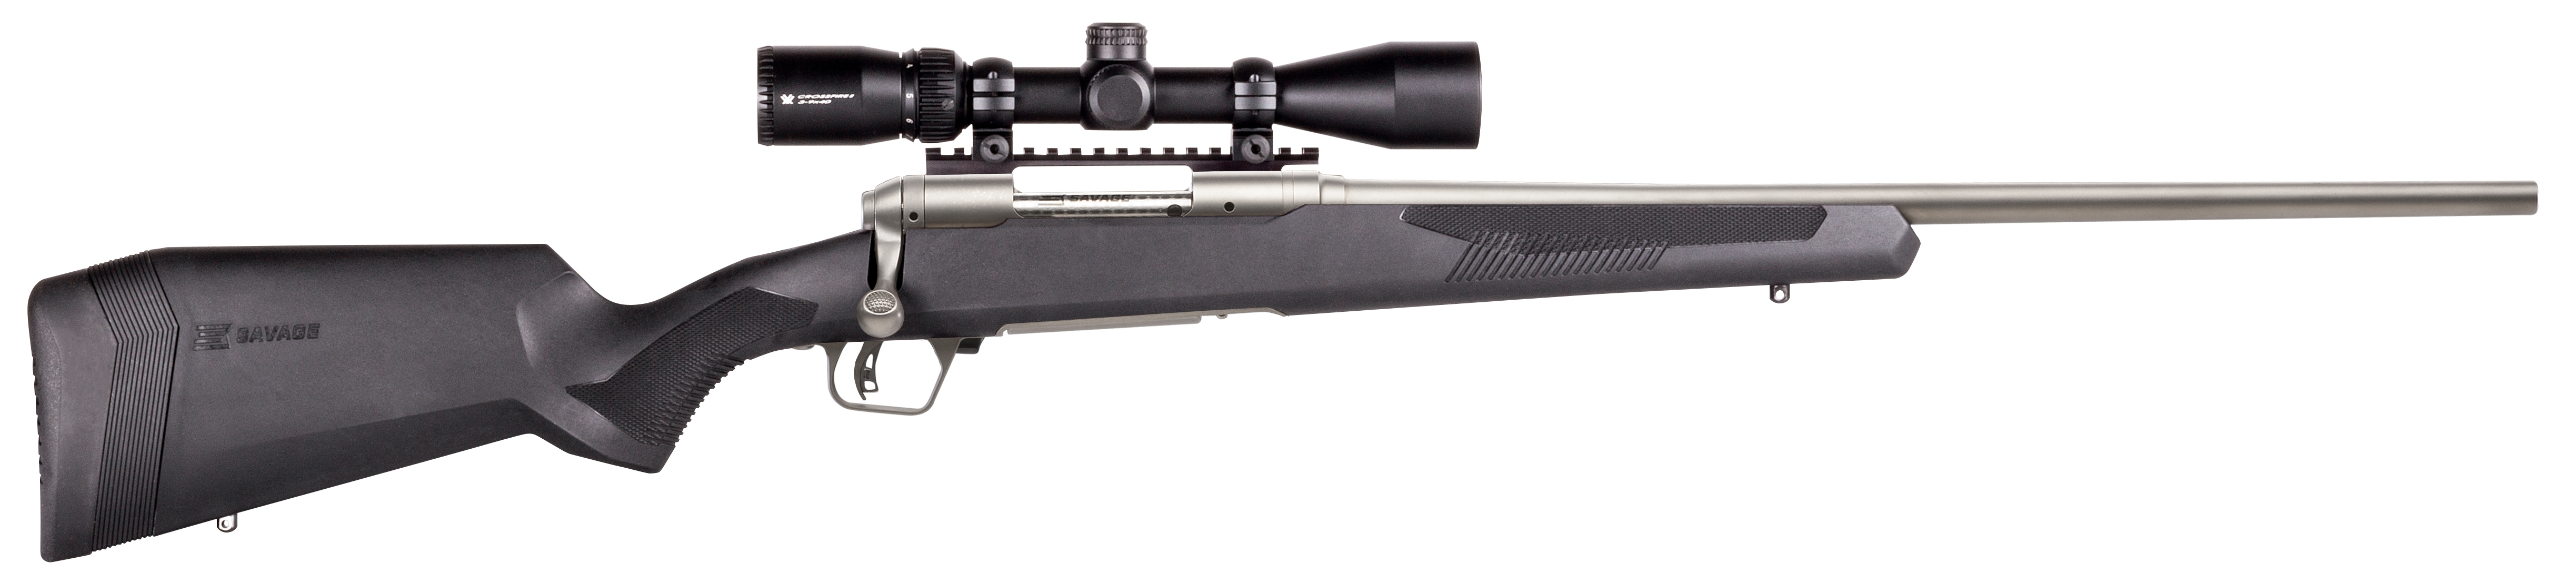 Savage Arms 110 Apex Storm XP 6.5 PRC